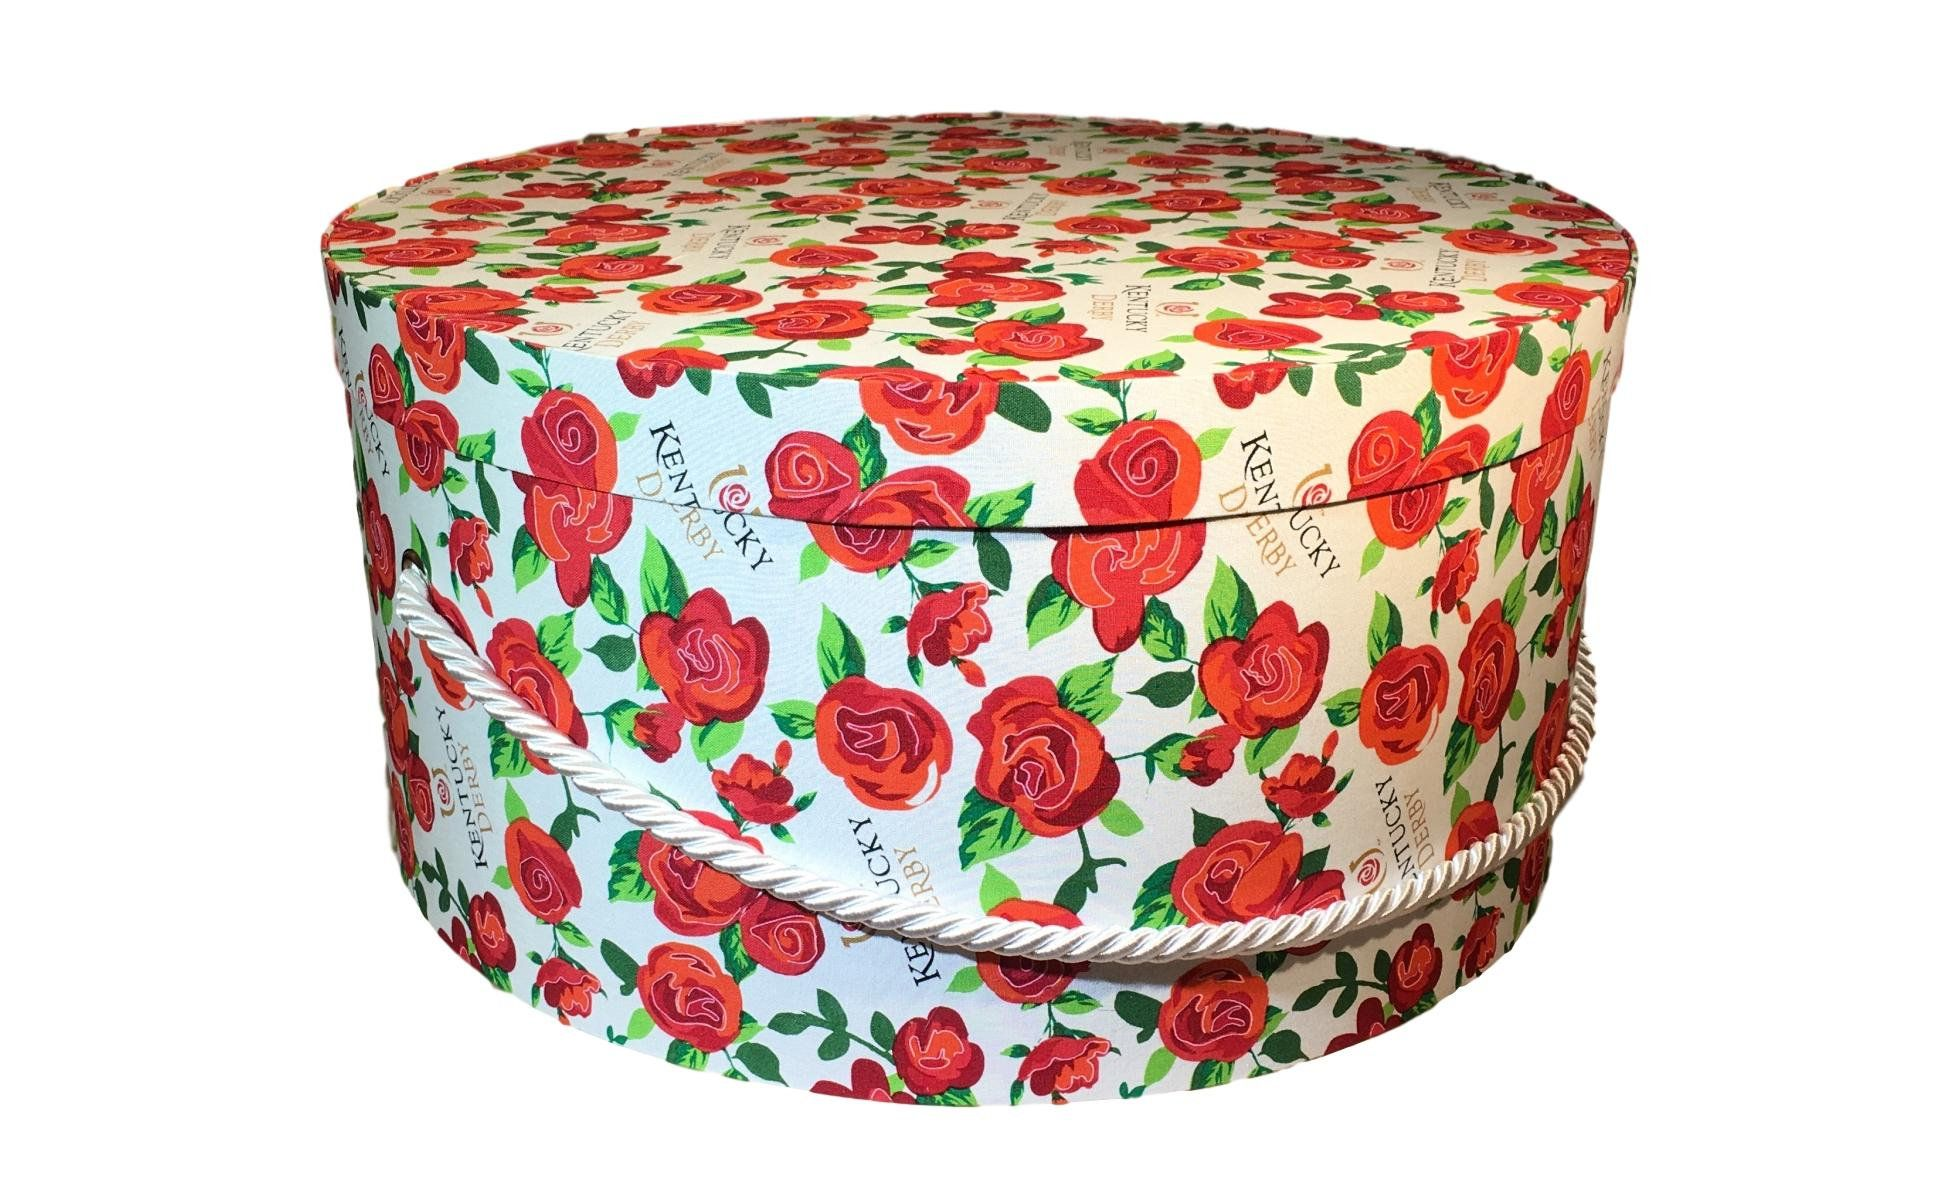 Large Hat Box In Kentucky Derby Roses Large Decorative Fabric Covered Hat Boxes Round Storage Box Keepsake Boxes With Lid N Fabric Decor Large Hats Hat Box